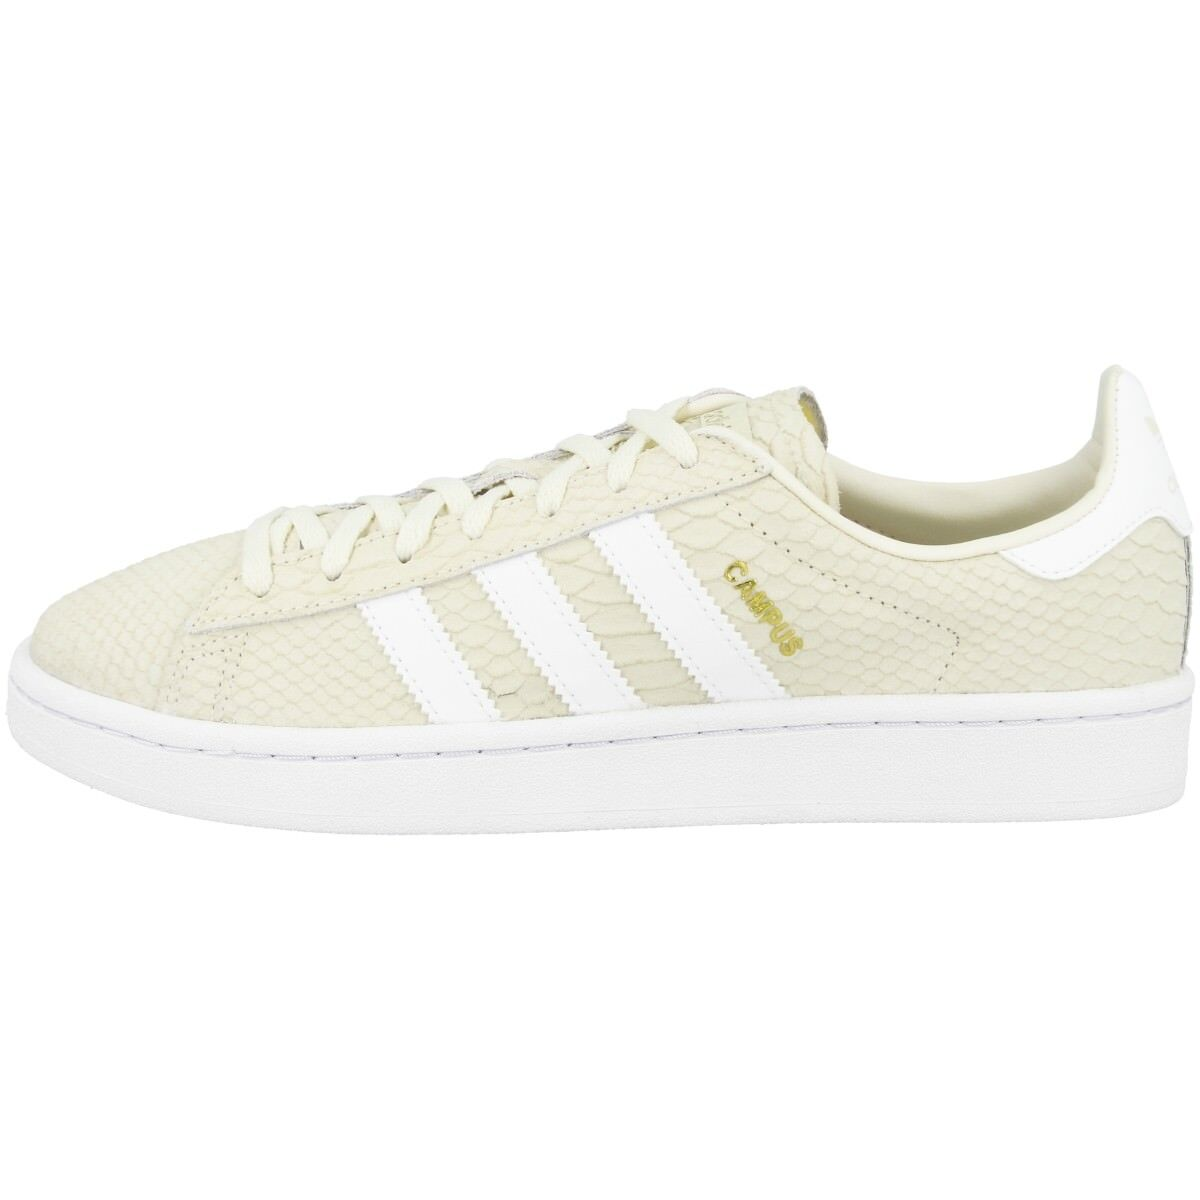 Adidas Campus Women Schuhe Originals Damen Retro Sneaker cream white CQ2104 gold CQ2104 white bbd0fb